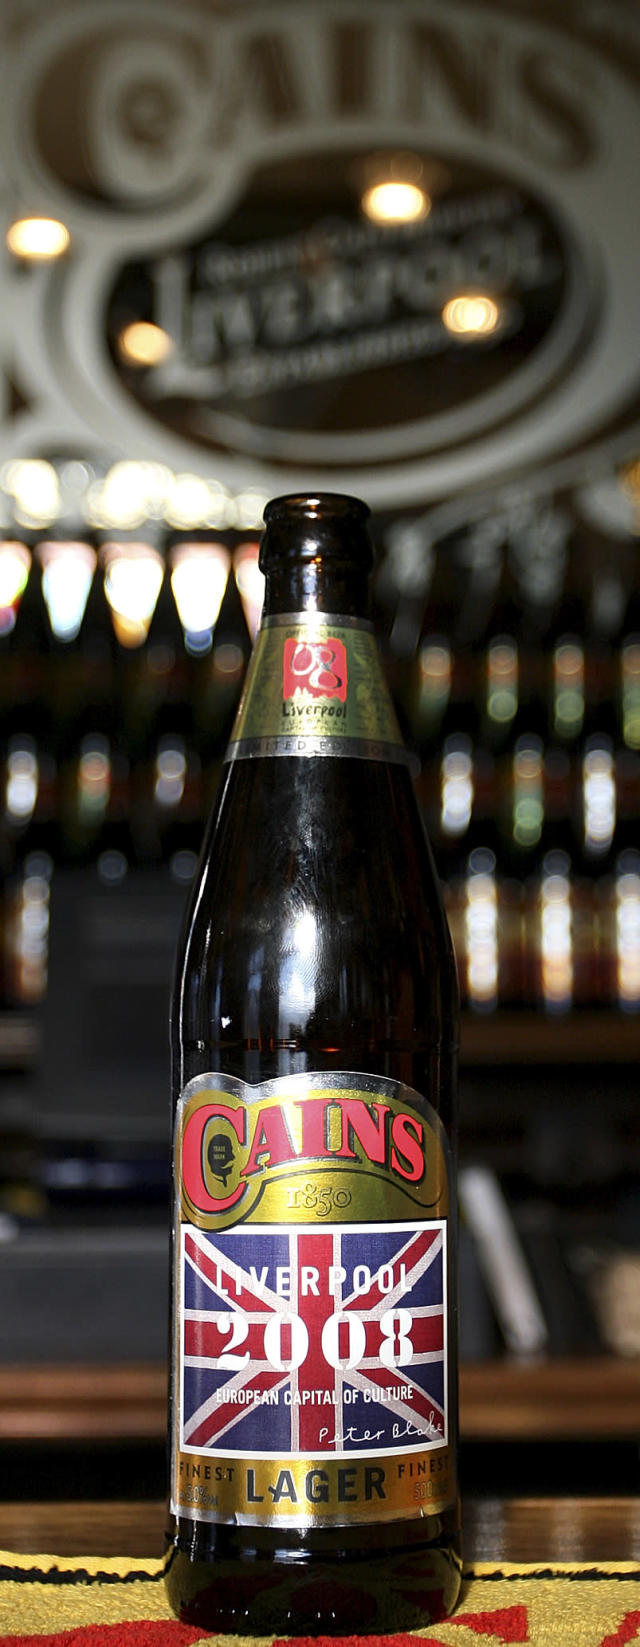 A Cains' Best of British lager bottles with a label designed by British artist Peter Blake, featuring the British flag and his signature, is seen at a pub in Liverpool, England, Friday Feb. 11, 2008. Blake, who created the The Beatles' Sgt. Pepper's Lonely Hearts Club Band album cover, has designed a beer bottle label to celebrate Liverpool's European Capital of Culture year. Cains Beer, based in Toxteth, Liverpool, plans to produce 250,000 bottles until December. (AP Photo/Paul Thomas)